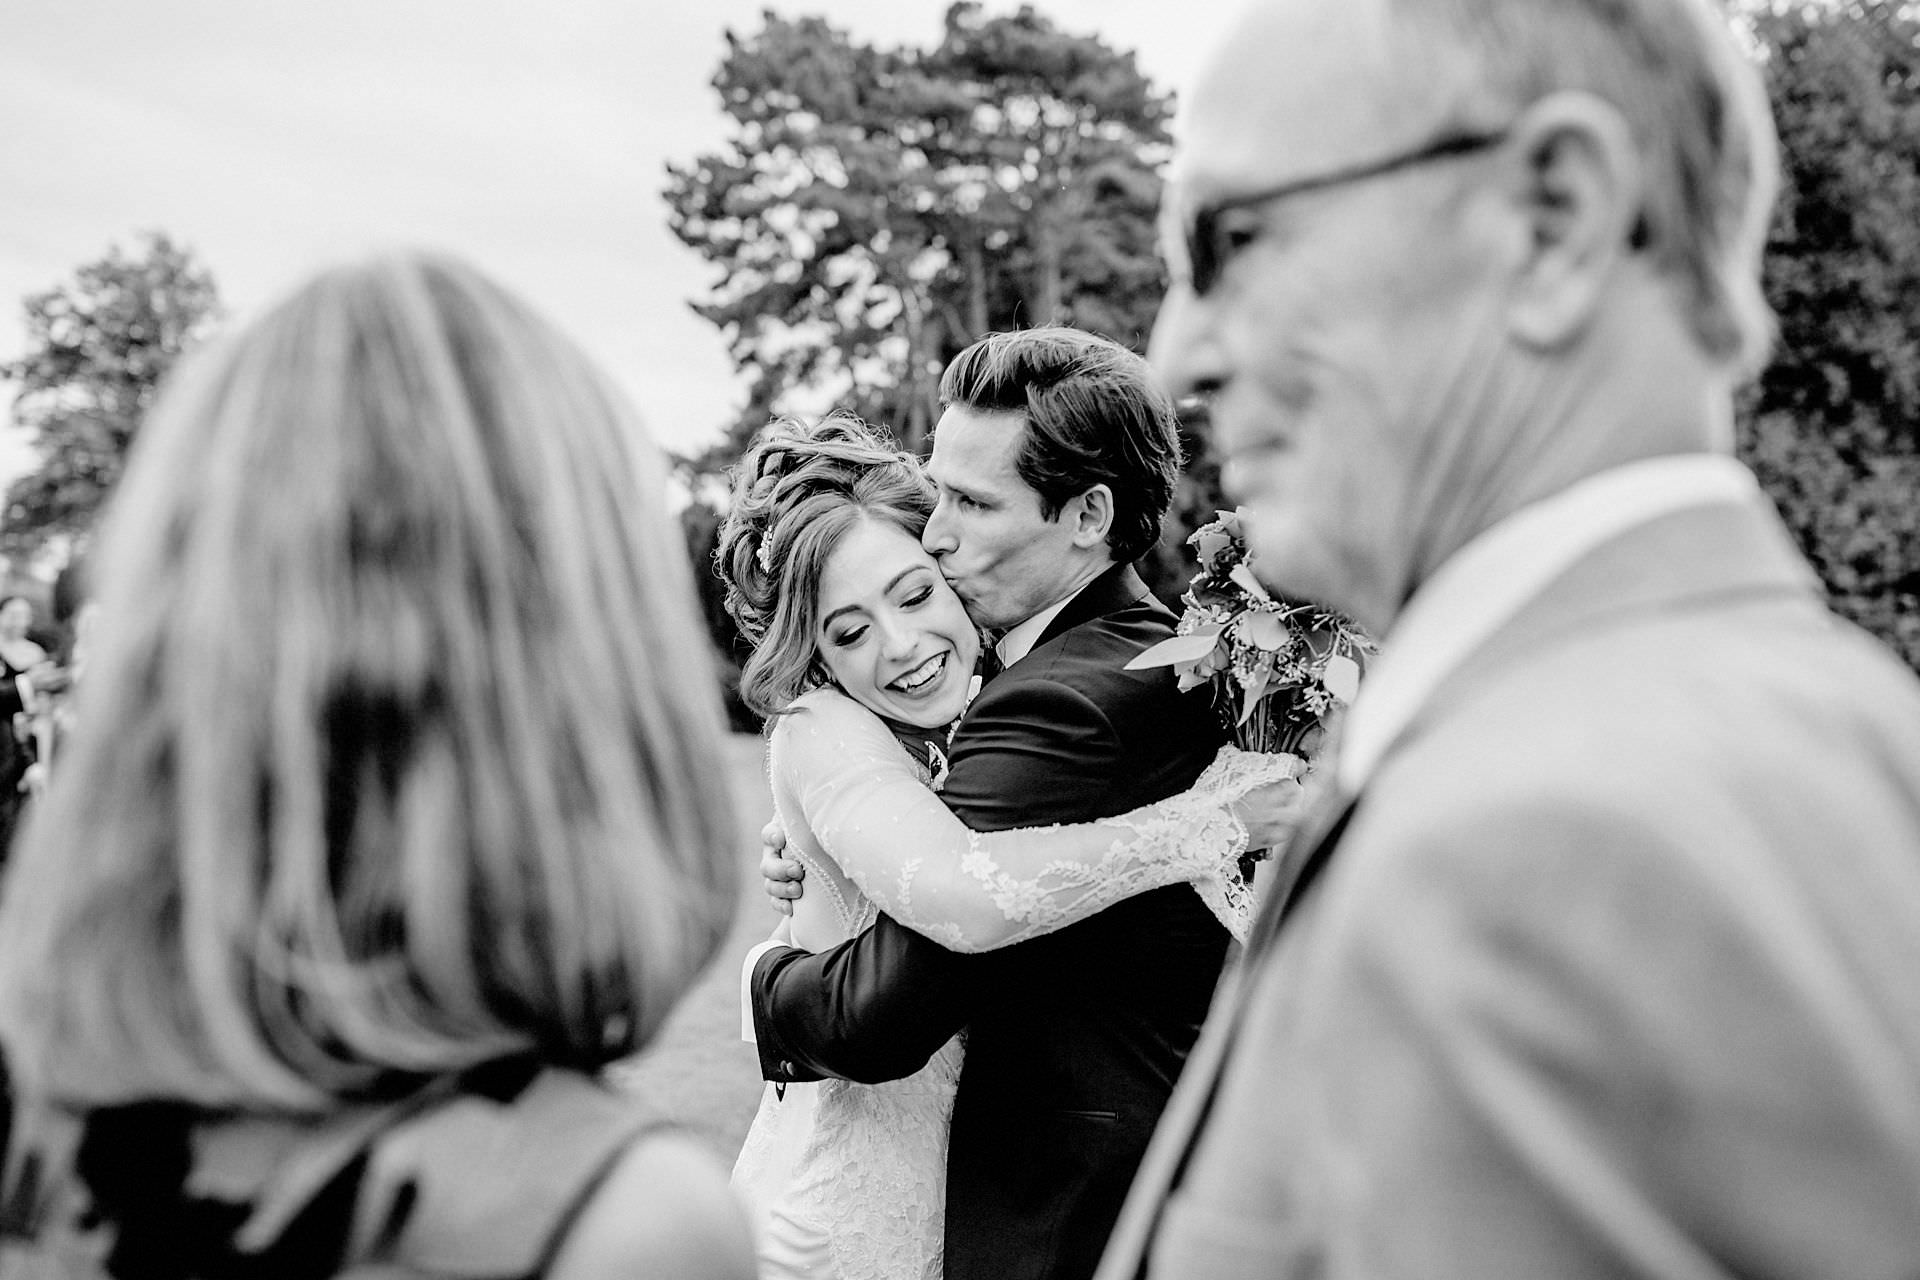 happiness, wedding day, black and white photo of the bride and groom